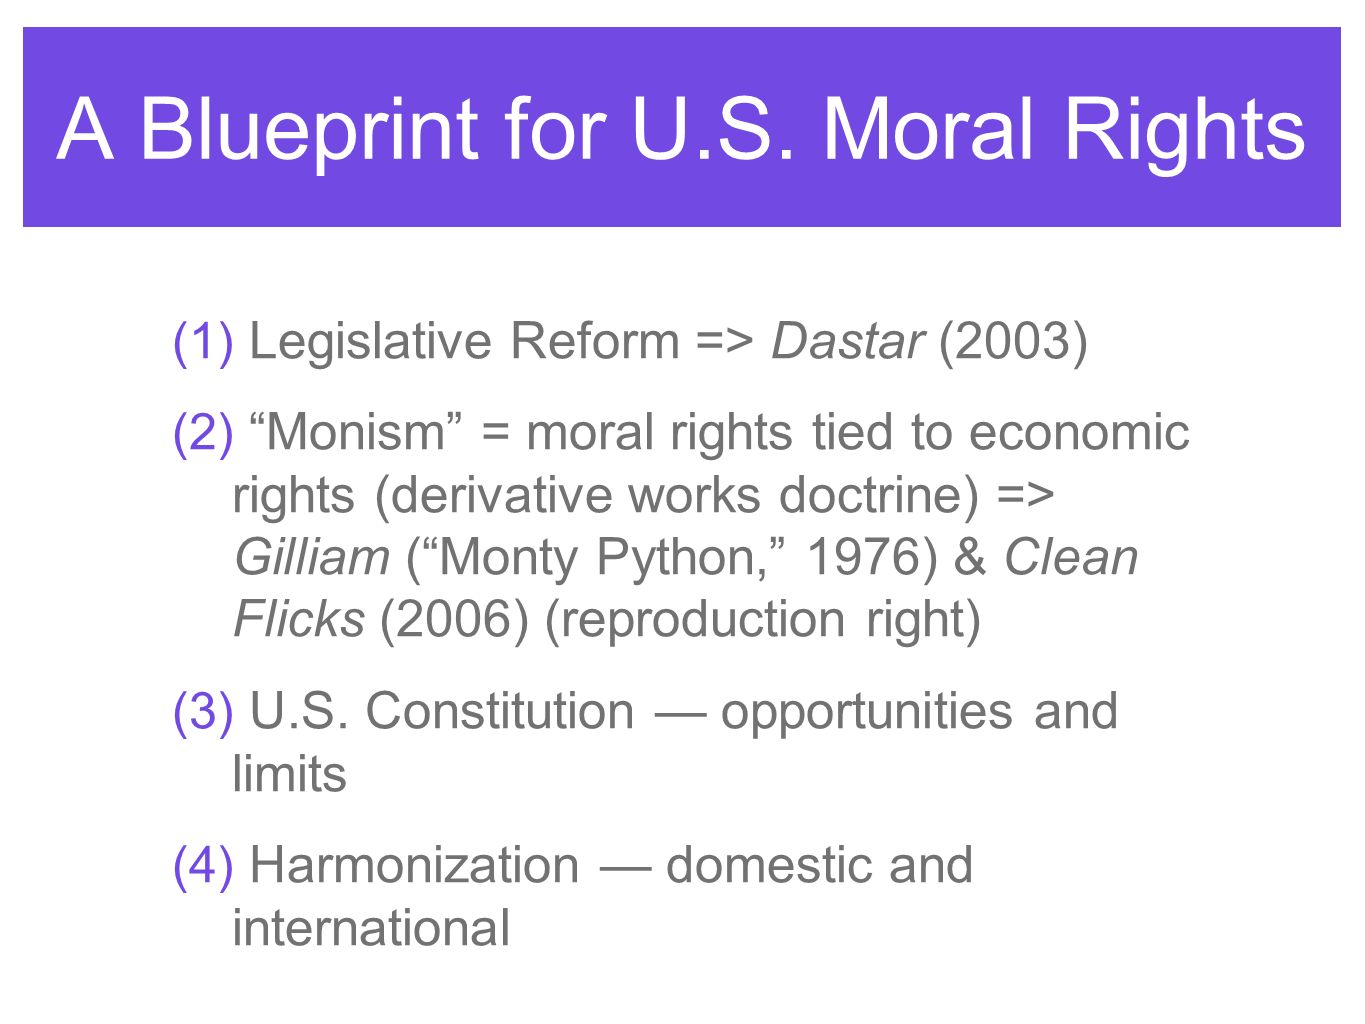 A Blueprint for U.S. Moral Rights